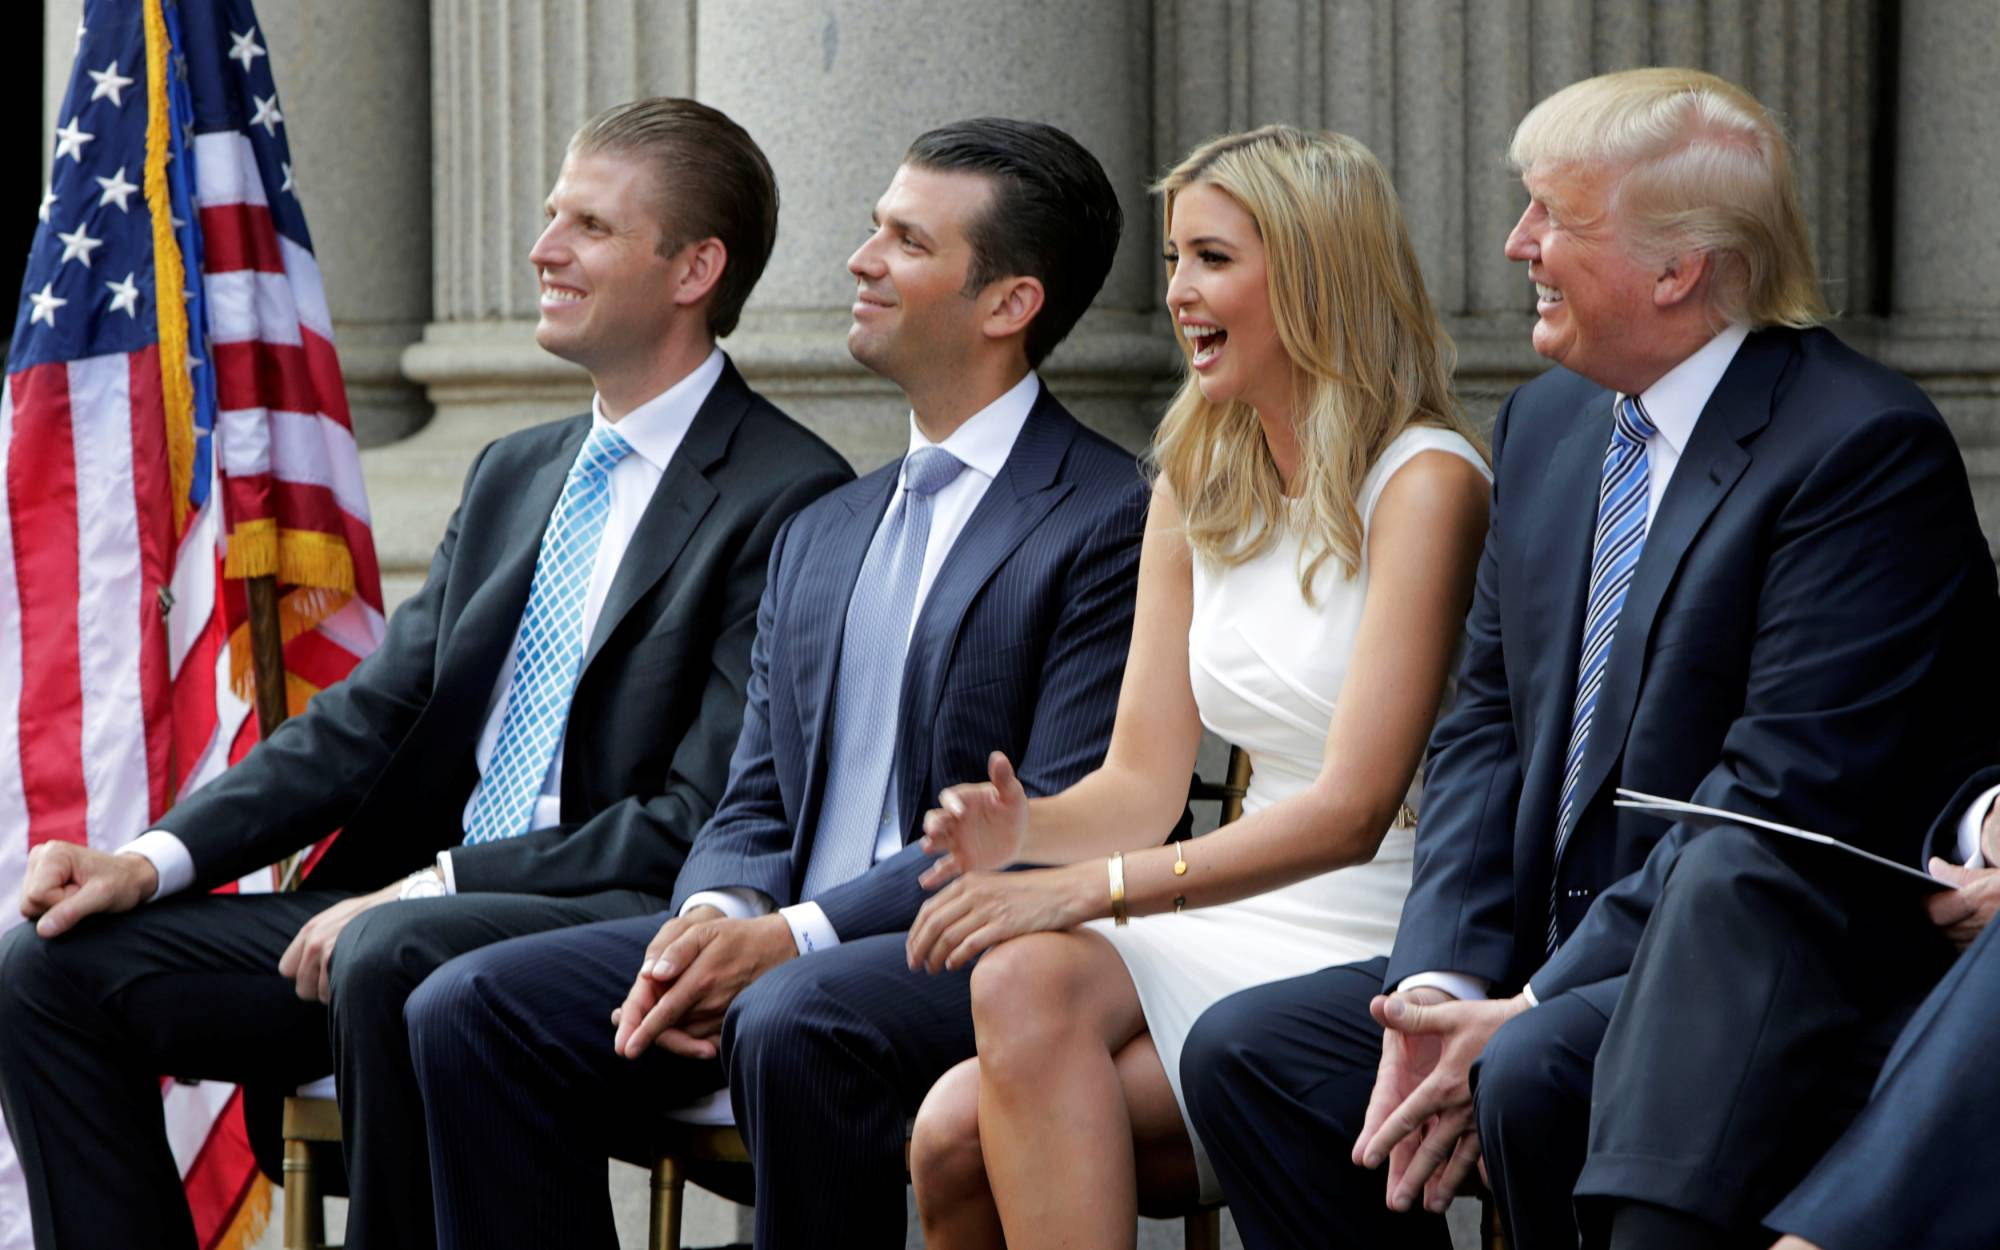 (Left to right) Eric Trump, Donald Trump Jr., Ivanka Trump and Donald Trump attend the ground breaking of the Trump International Hotel in Washington in July 2014.  | REUTERS